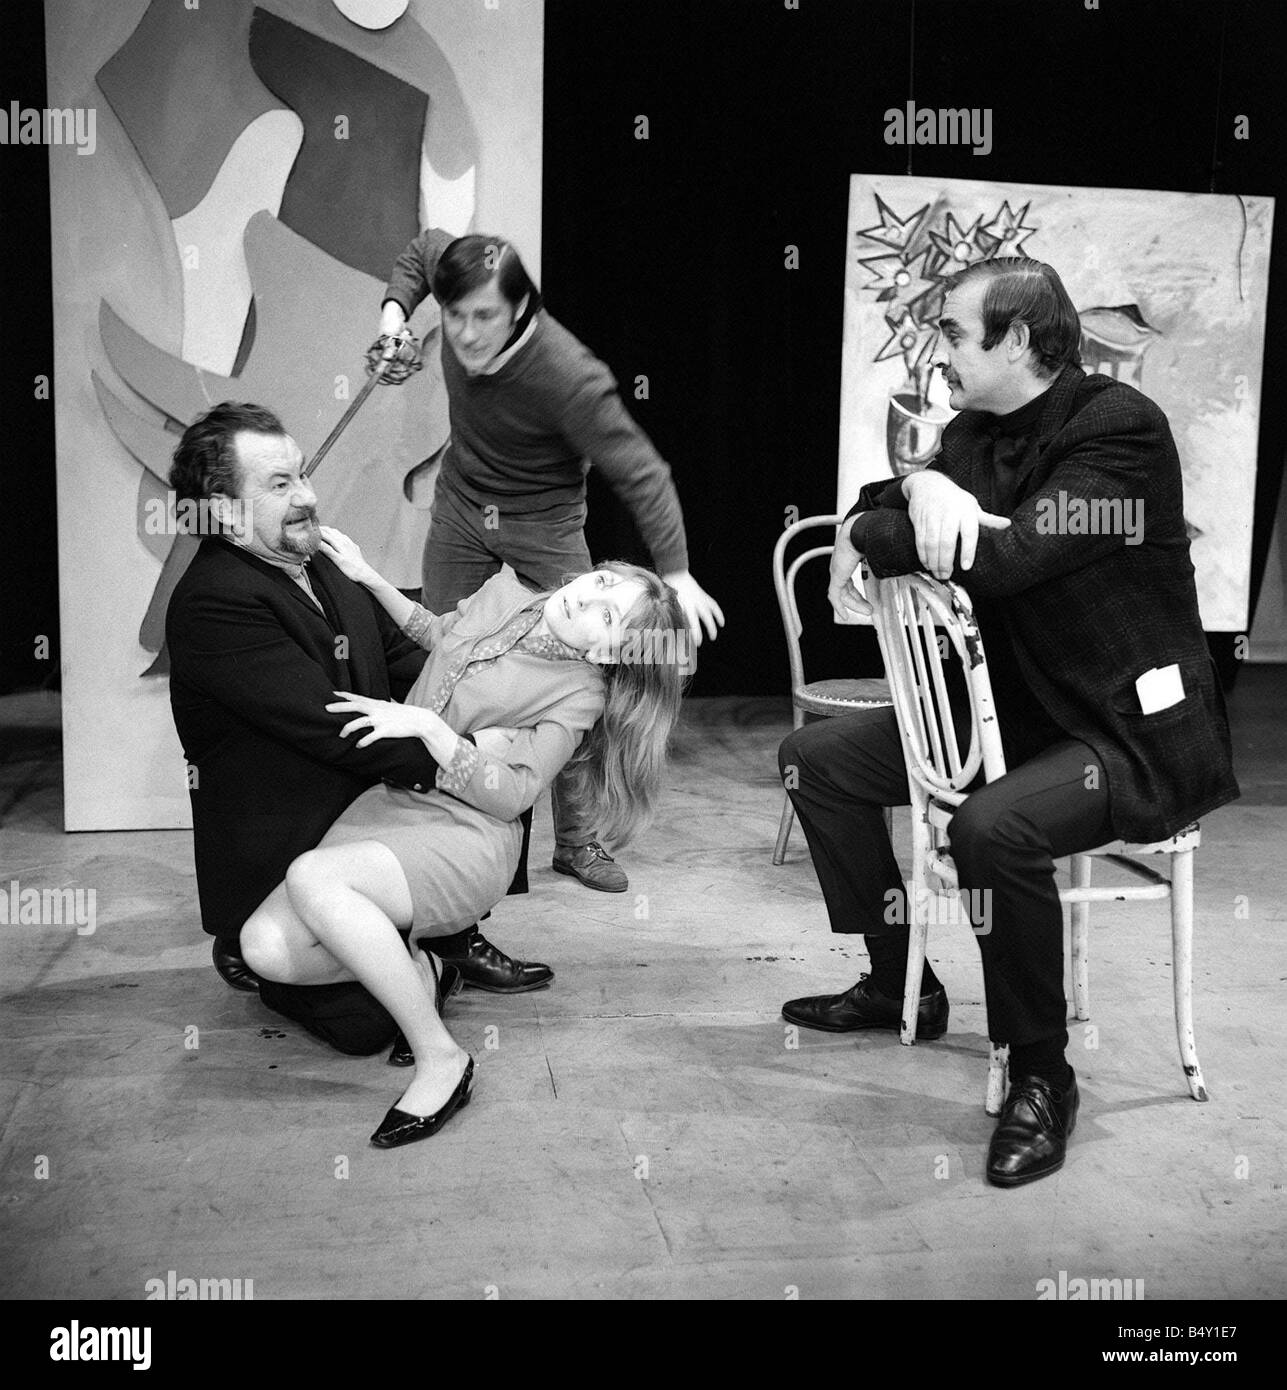 Leo McKern Bearded January 1967 holds Maureen O Brien in back ground Mathew Long Holding Sword looking on is Sean - Stock Image